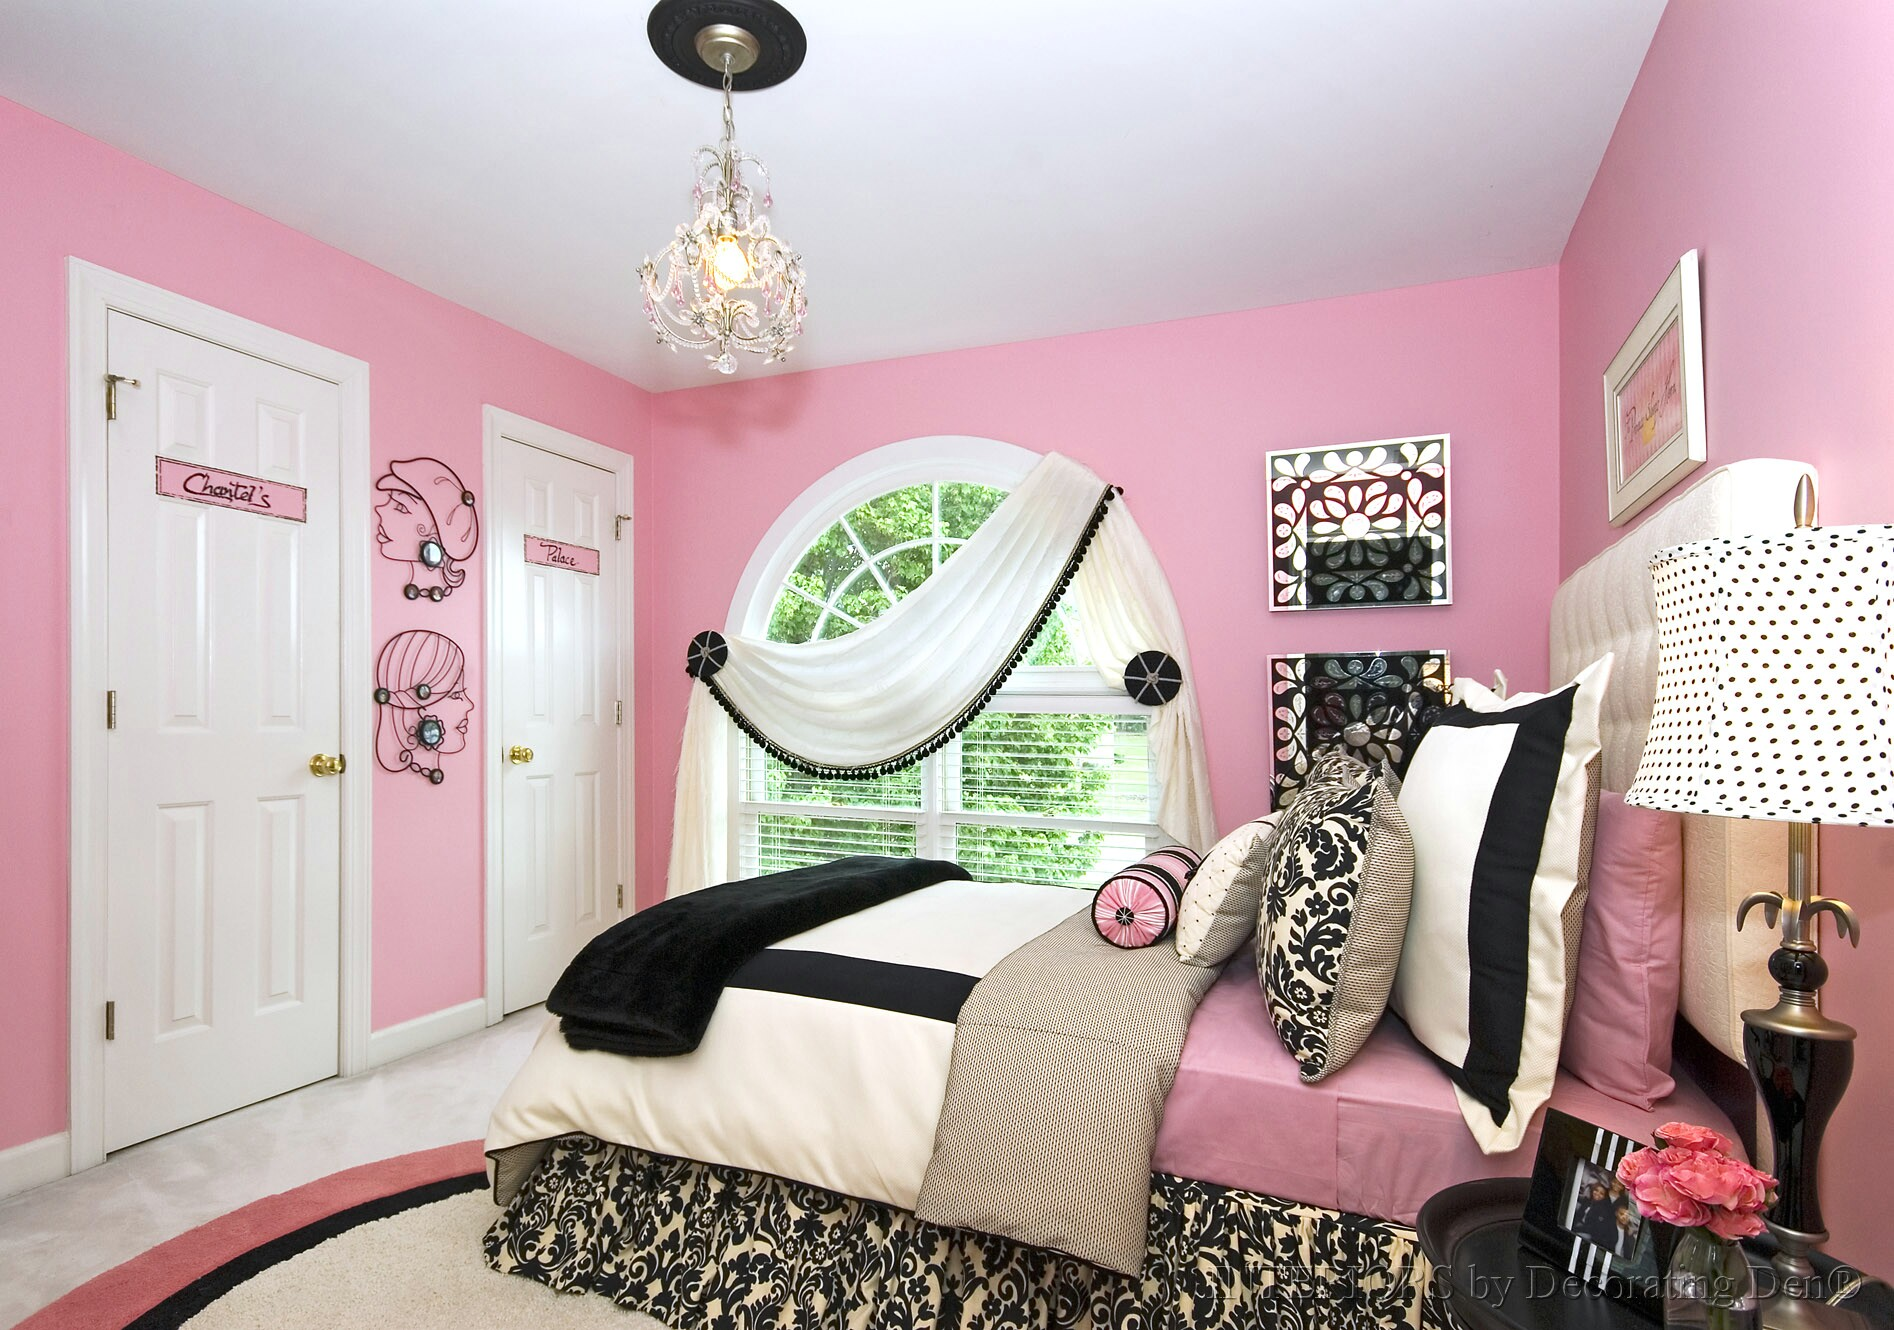 A Bedroom Makeover For A Teen Girls Room on color schemes for teenage girls bedroom